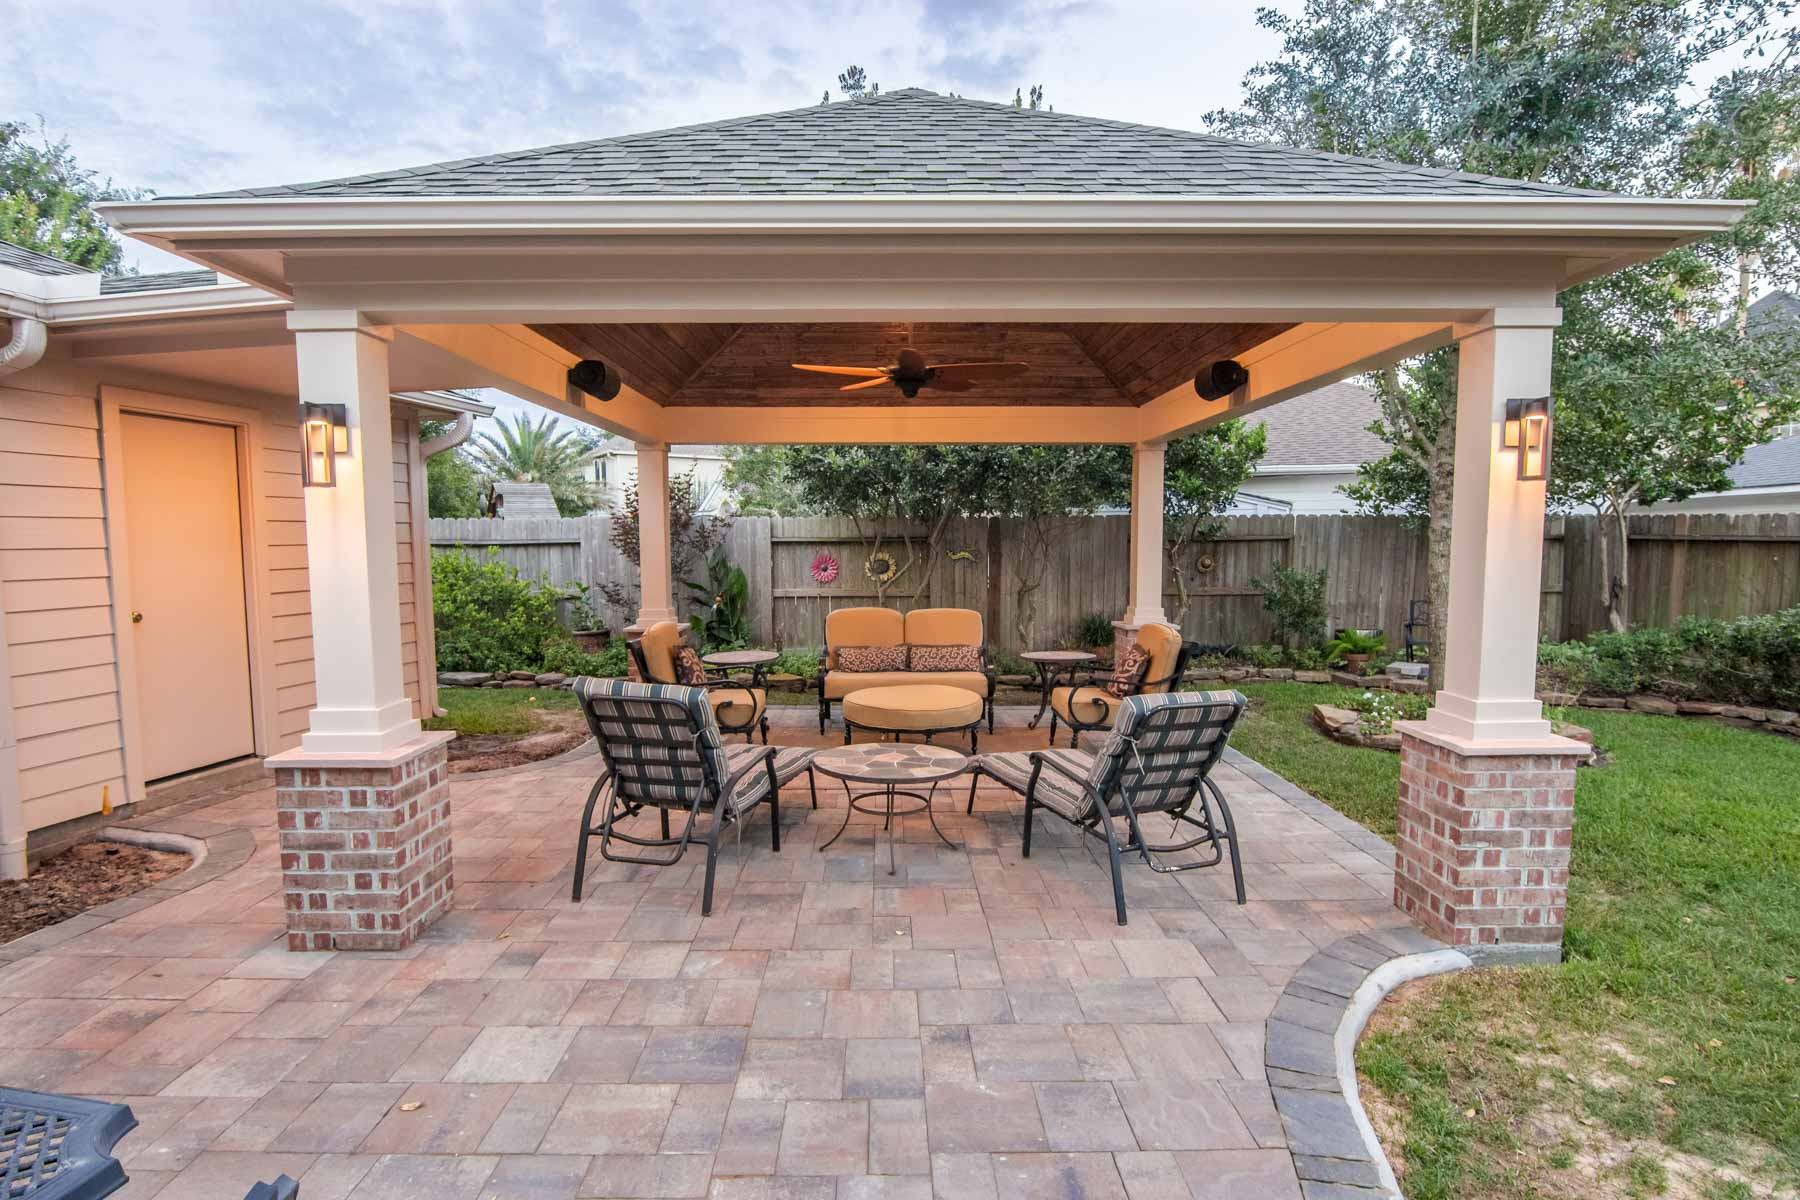 Hip Roof Patio Cover in Copperfield - HHI Patio Covers on Backyard Patio Cover  id=88090